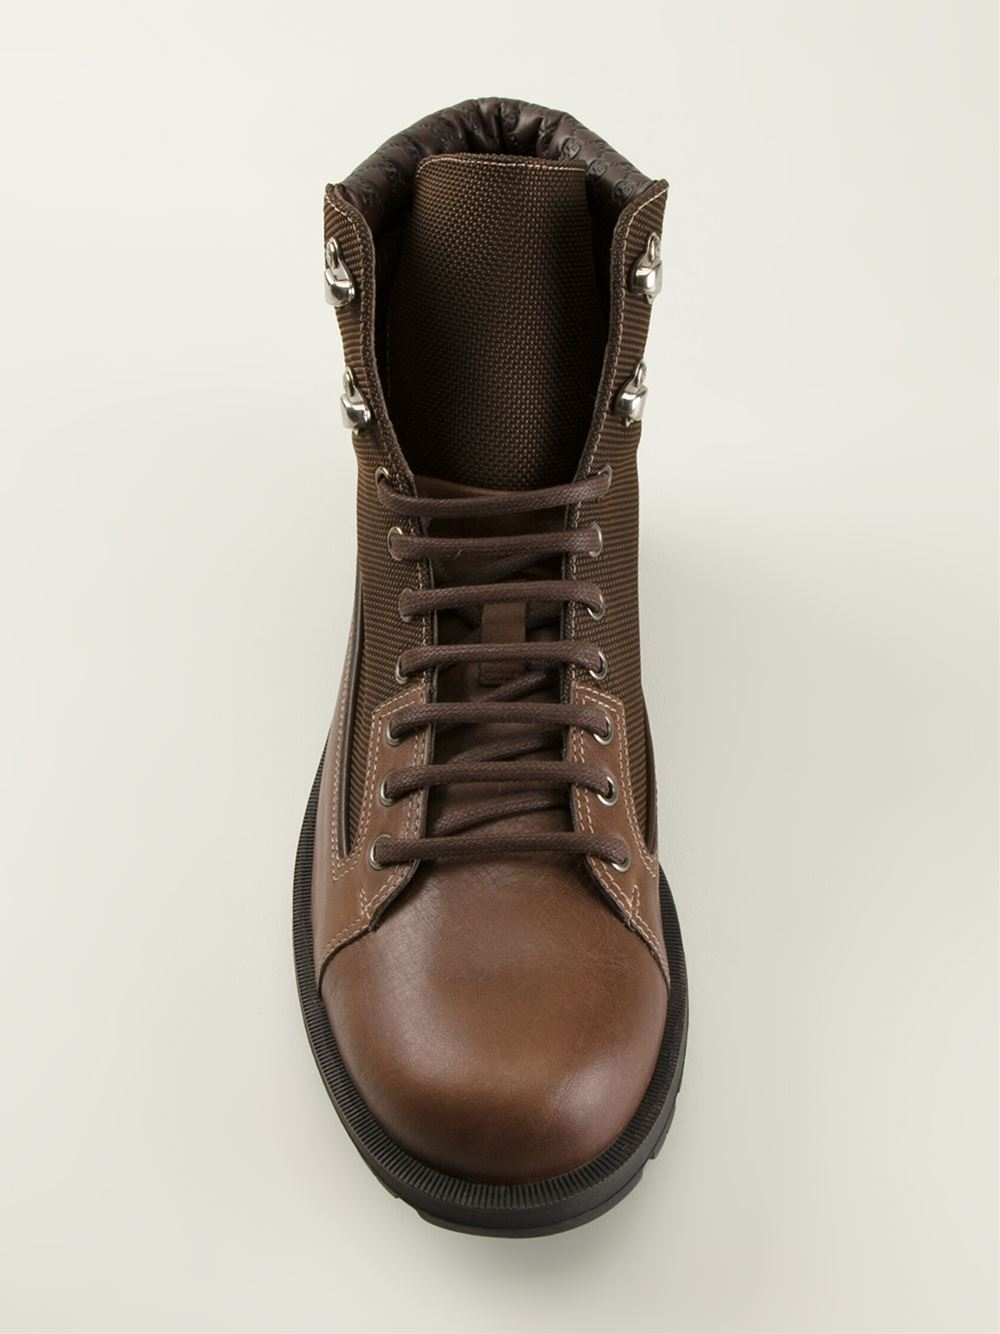 Gucci Brown Military Style Boots for men